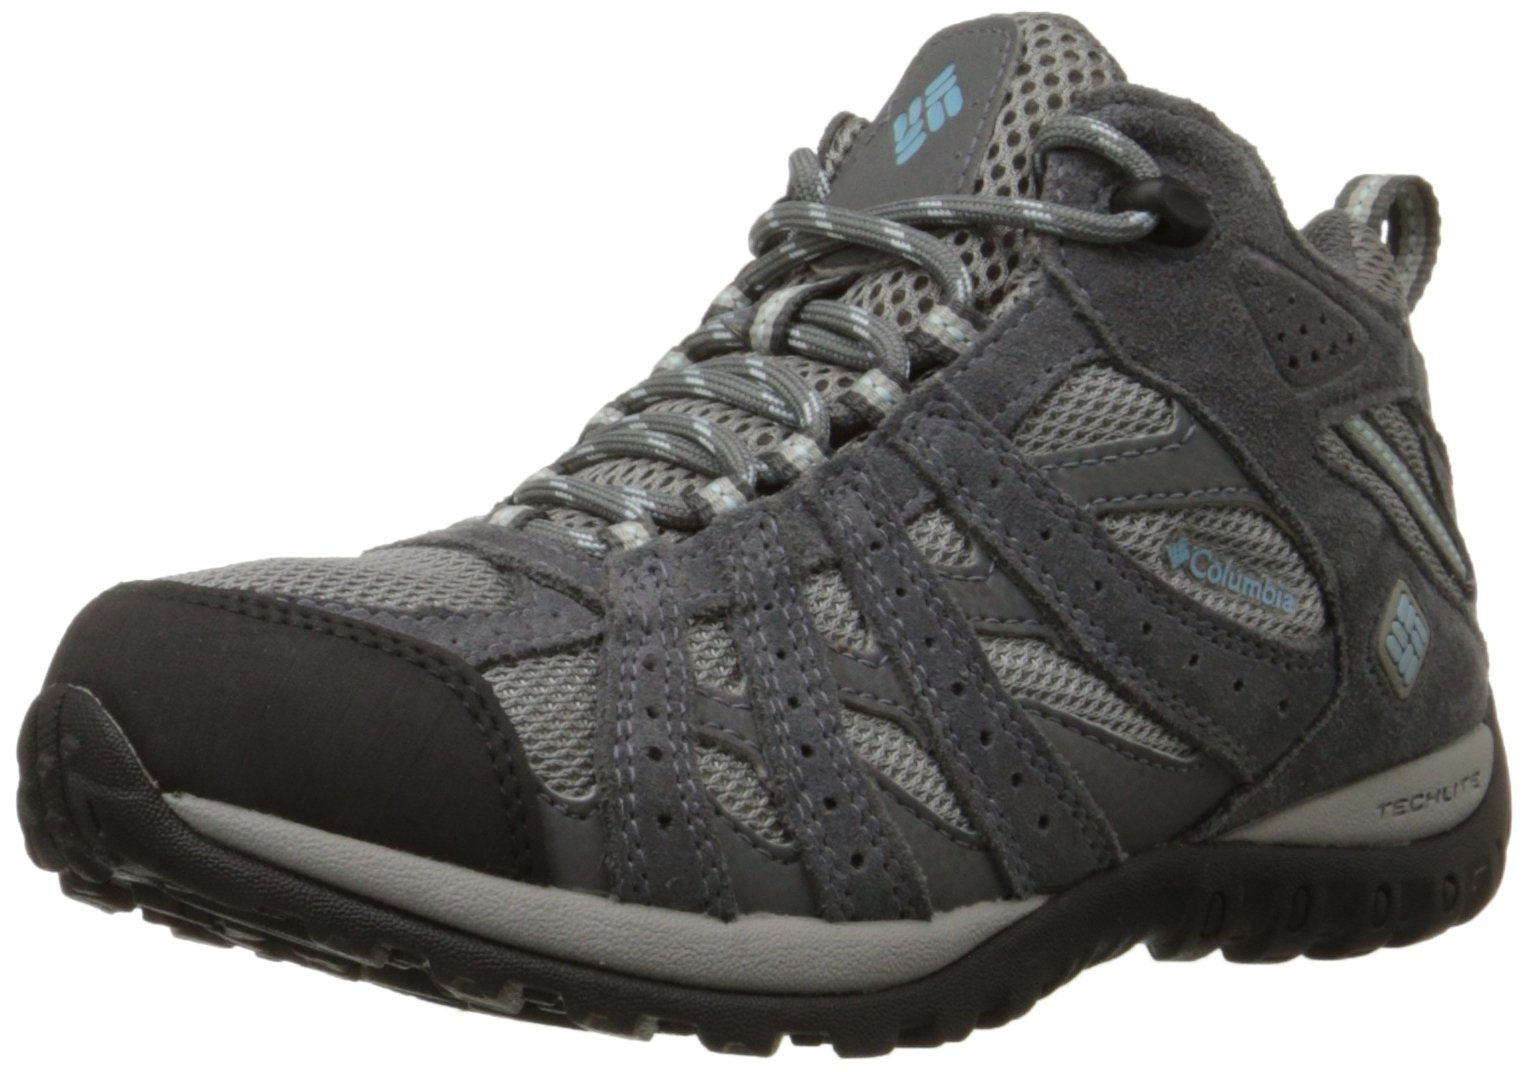 Columbia Women's Redmond Mid Waterproof Trail Shoe, Light Grey/Sky Blue, 9.5 M US